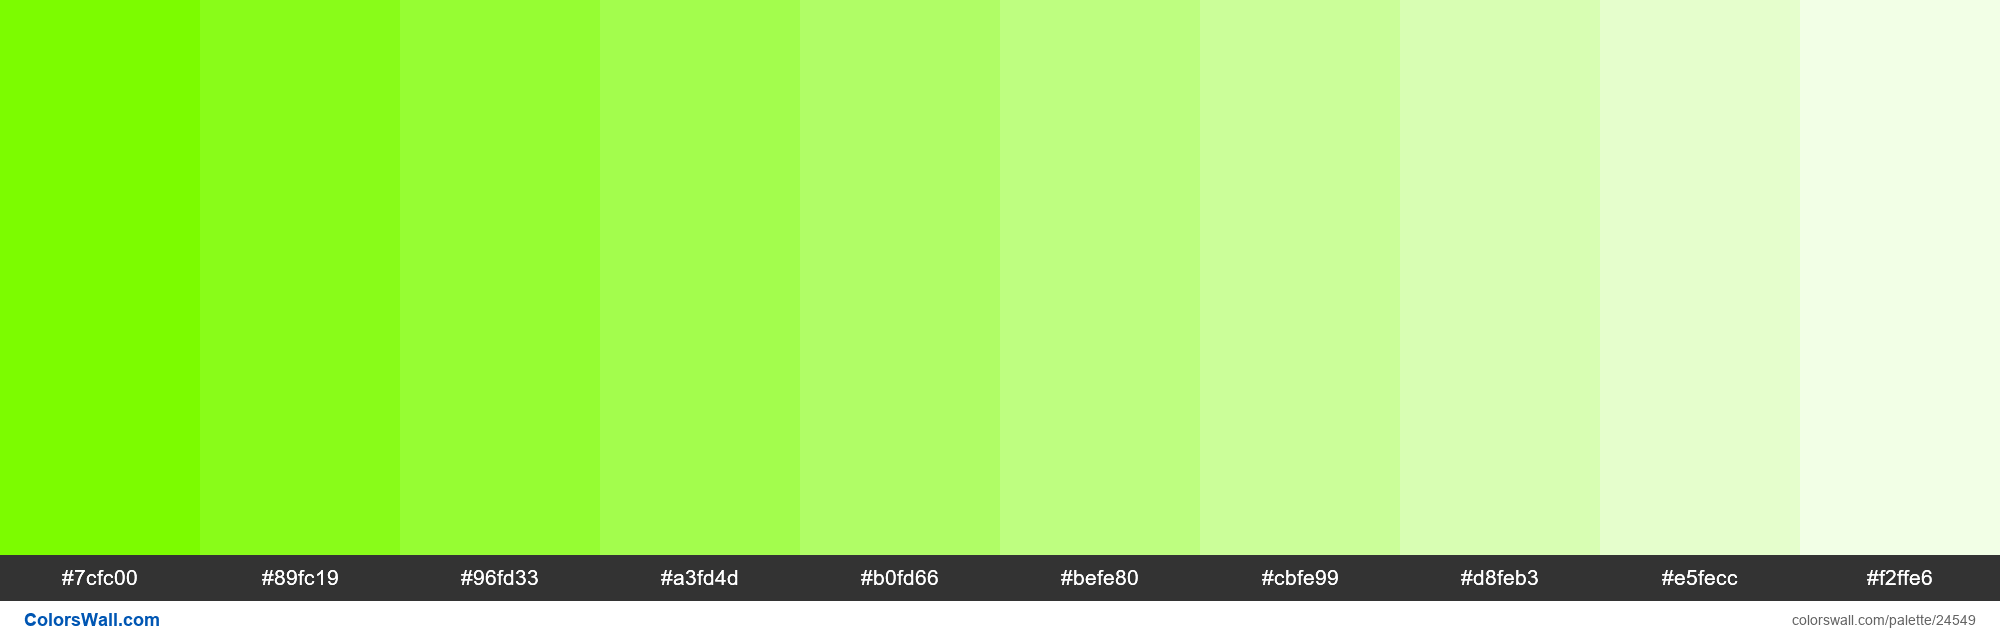 Tints of Lawn Green #7CFC00 hex color - #24549